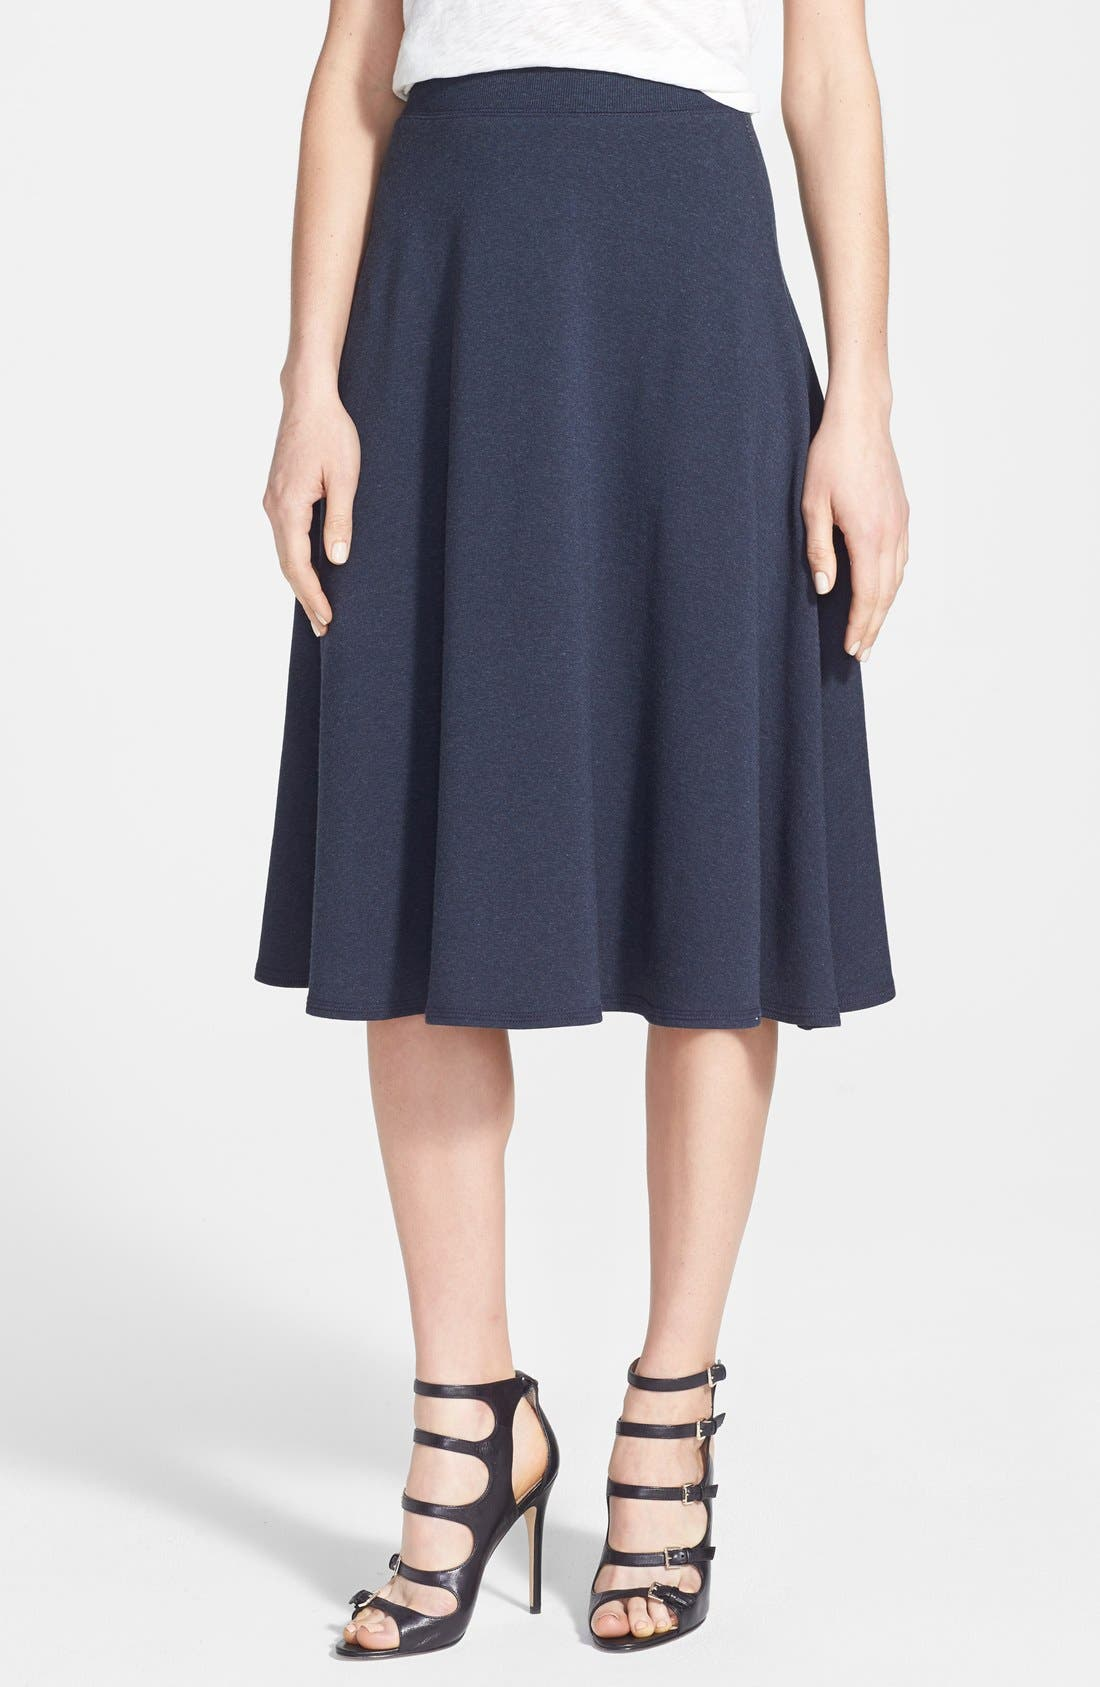 Alternate Image 1 Selected - Bailey 44 'Scotch Sour' French Terry A-Line Skirt